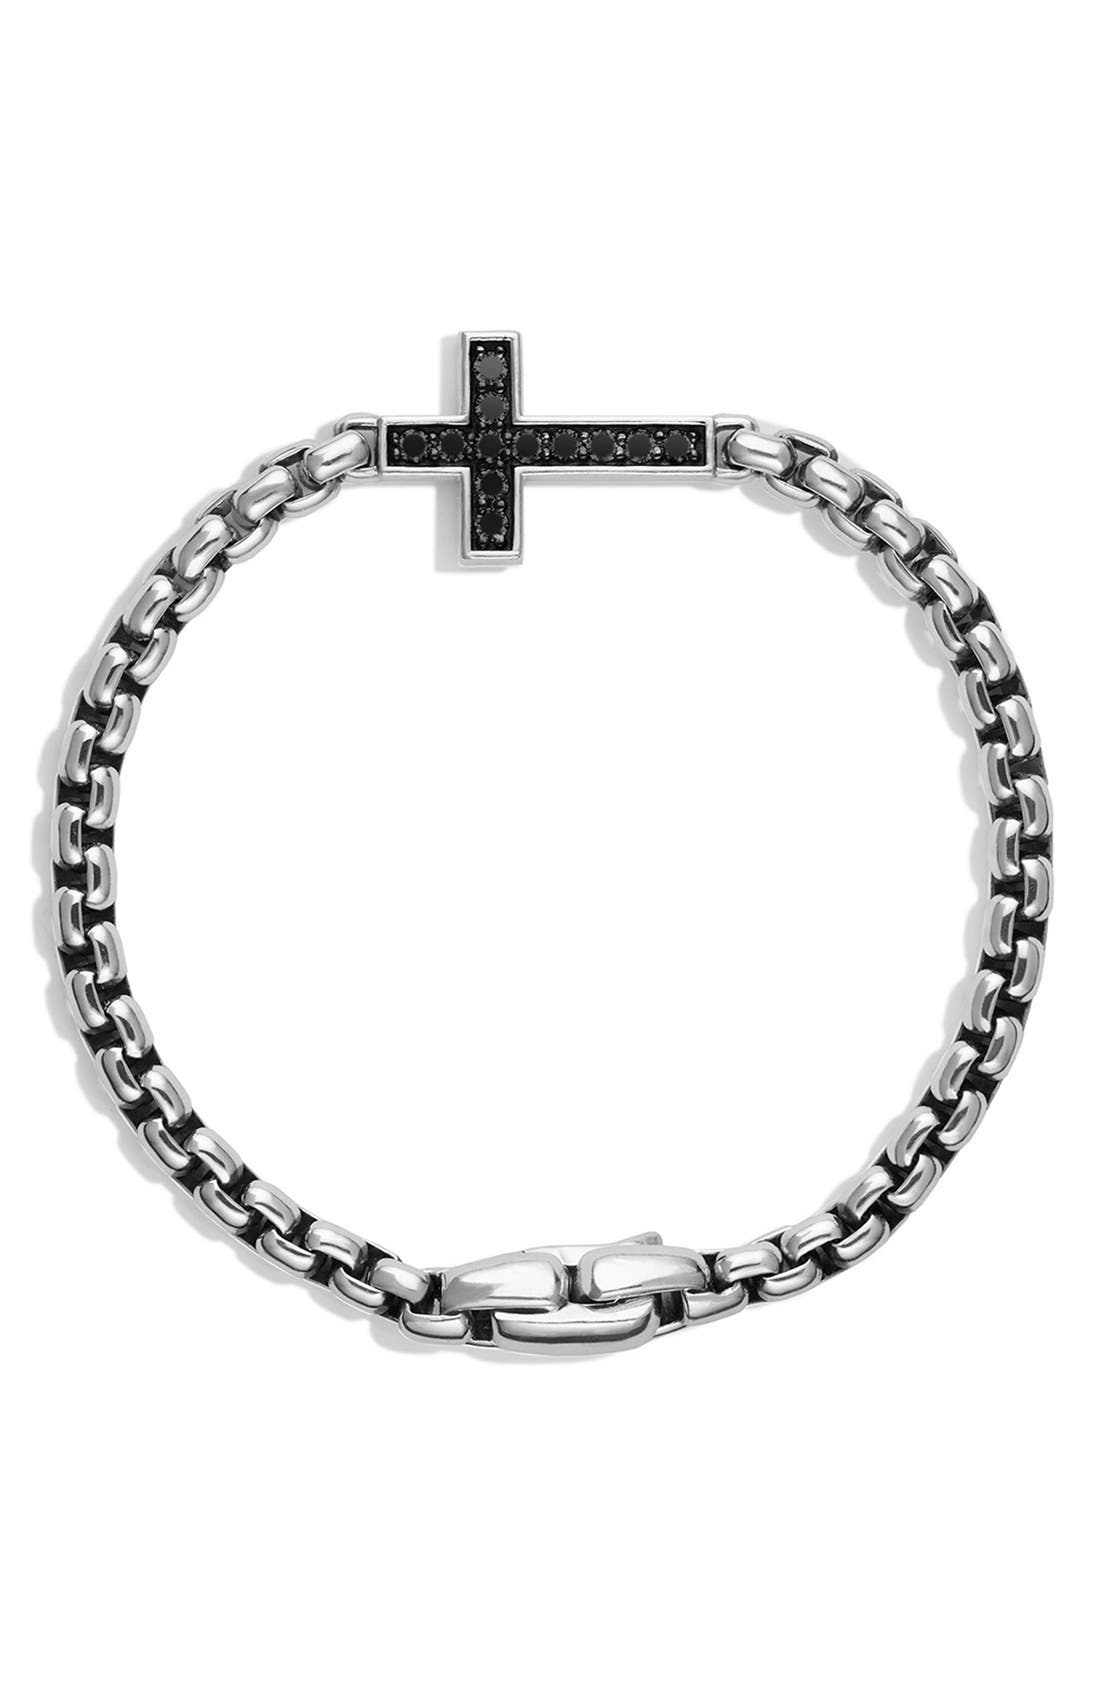 Pavé Black Diamond Cross Station Bracelet,                         Main,                         color, Black Diamond